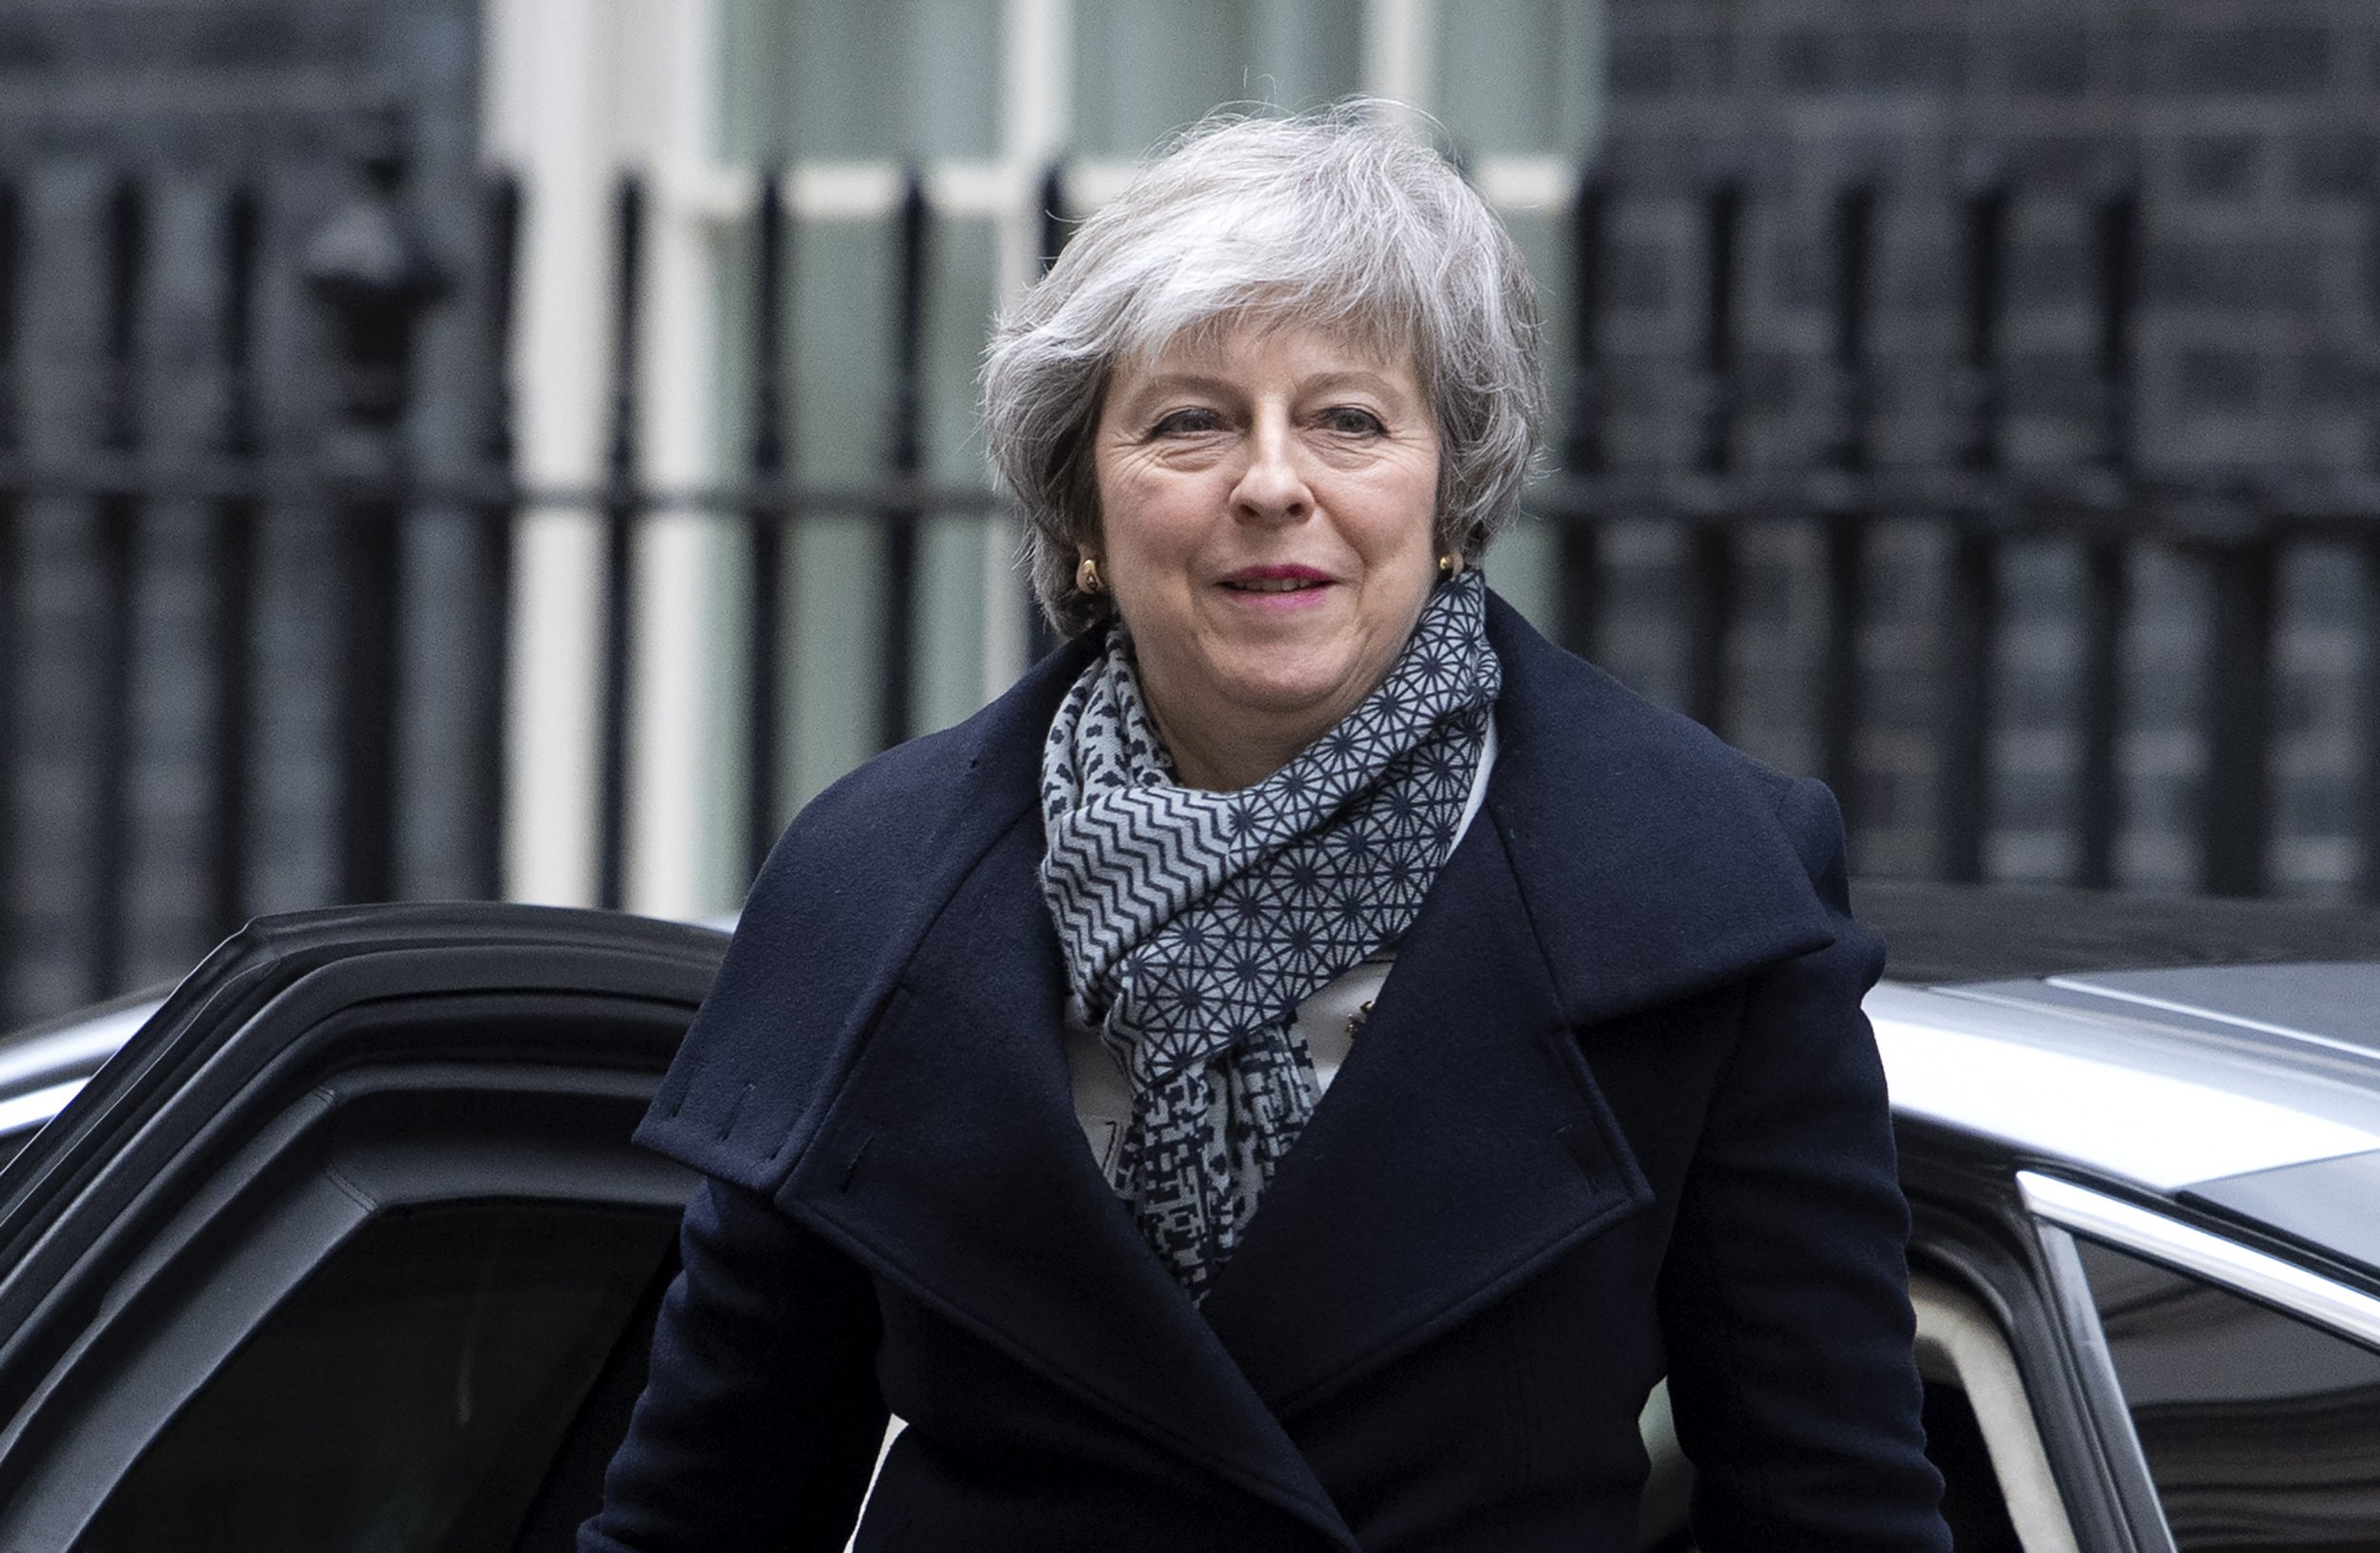 epa07283289 British Prime Minister, Theresa May arrives at 10 Downing street in central London, Britain, 14 January 2019 after giving a speech on Brexit to workers at the Portmeiron pottery factory in Stoke on Trent, central England. The postponed Brexit EU Withdrawal Agreement vote, or more commonly known as The Meaningful Vote, is due to be held in the House of Commons on 15 January 2019. EPA/FACUNDO ARRIZABALAGA